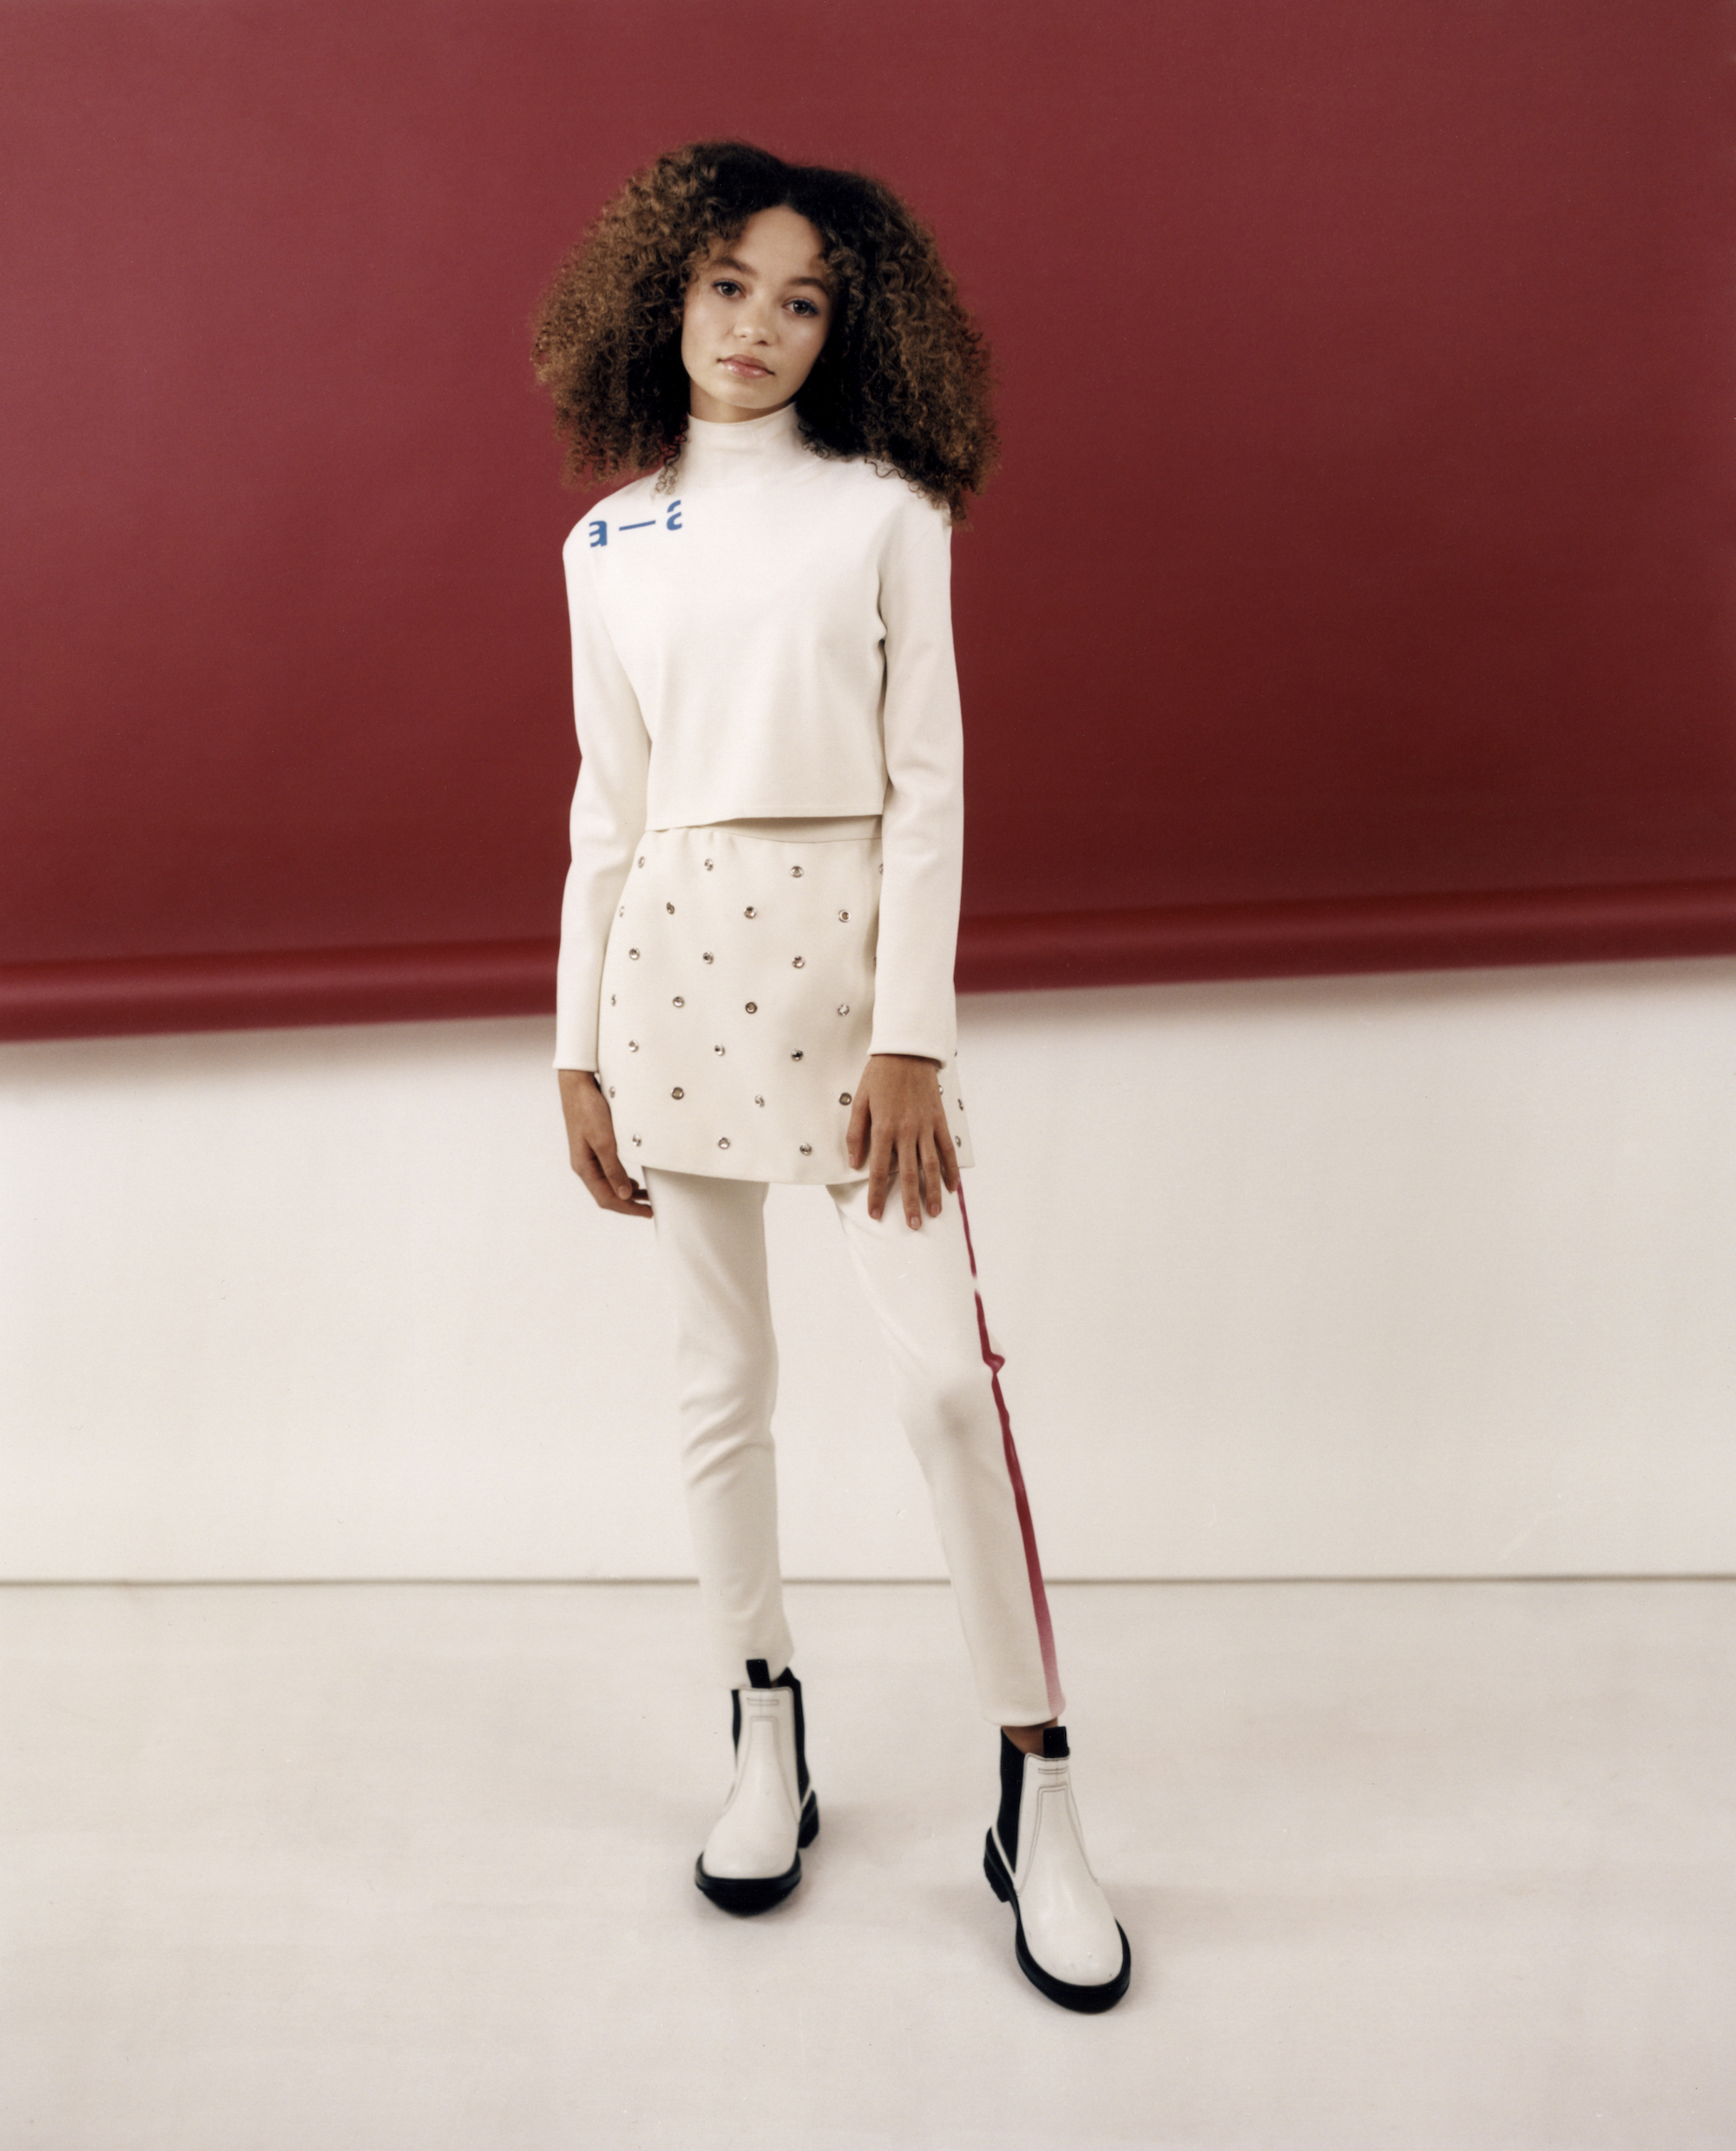 Thandie Newton's daughter Nico Parker, star of Dumbo in Wonderland's Spring 19 issue in white outfit